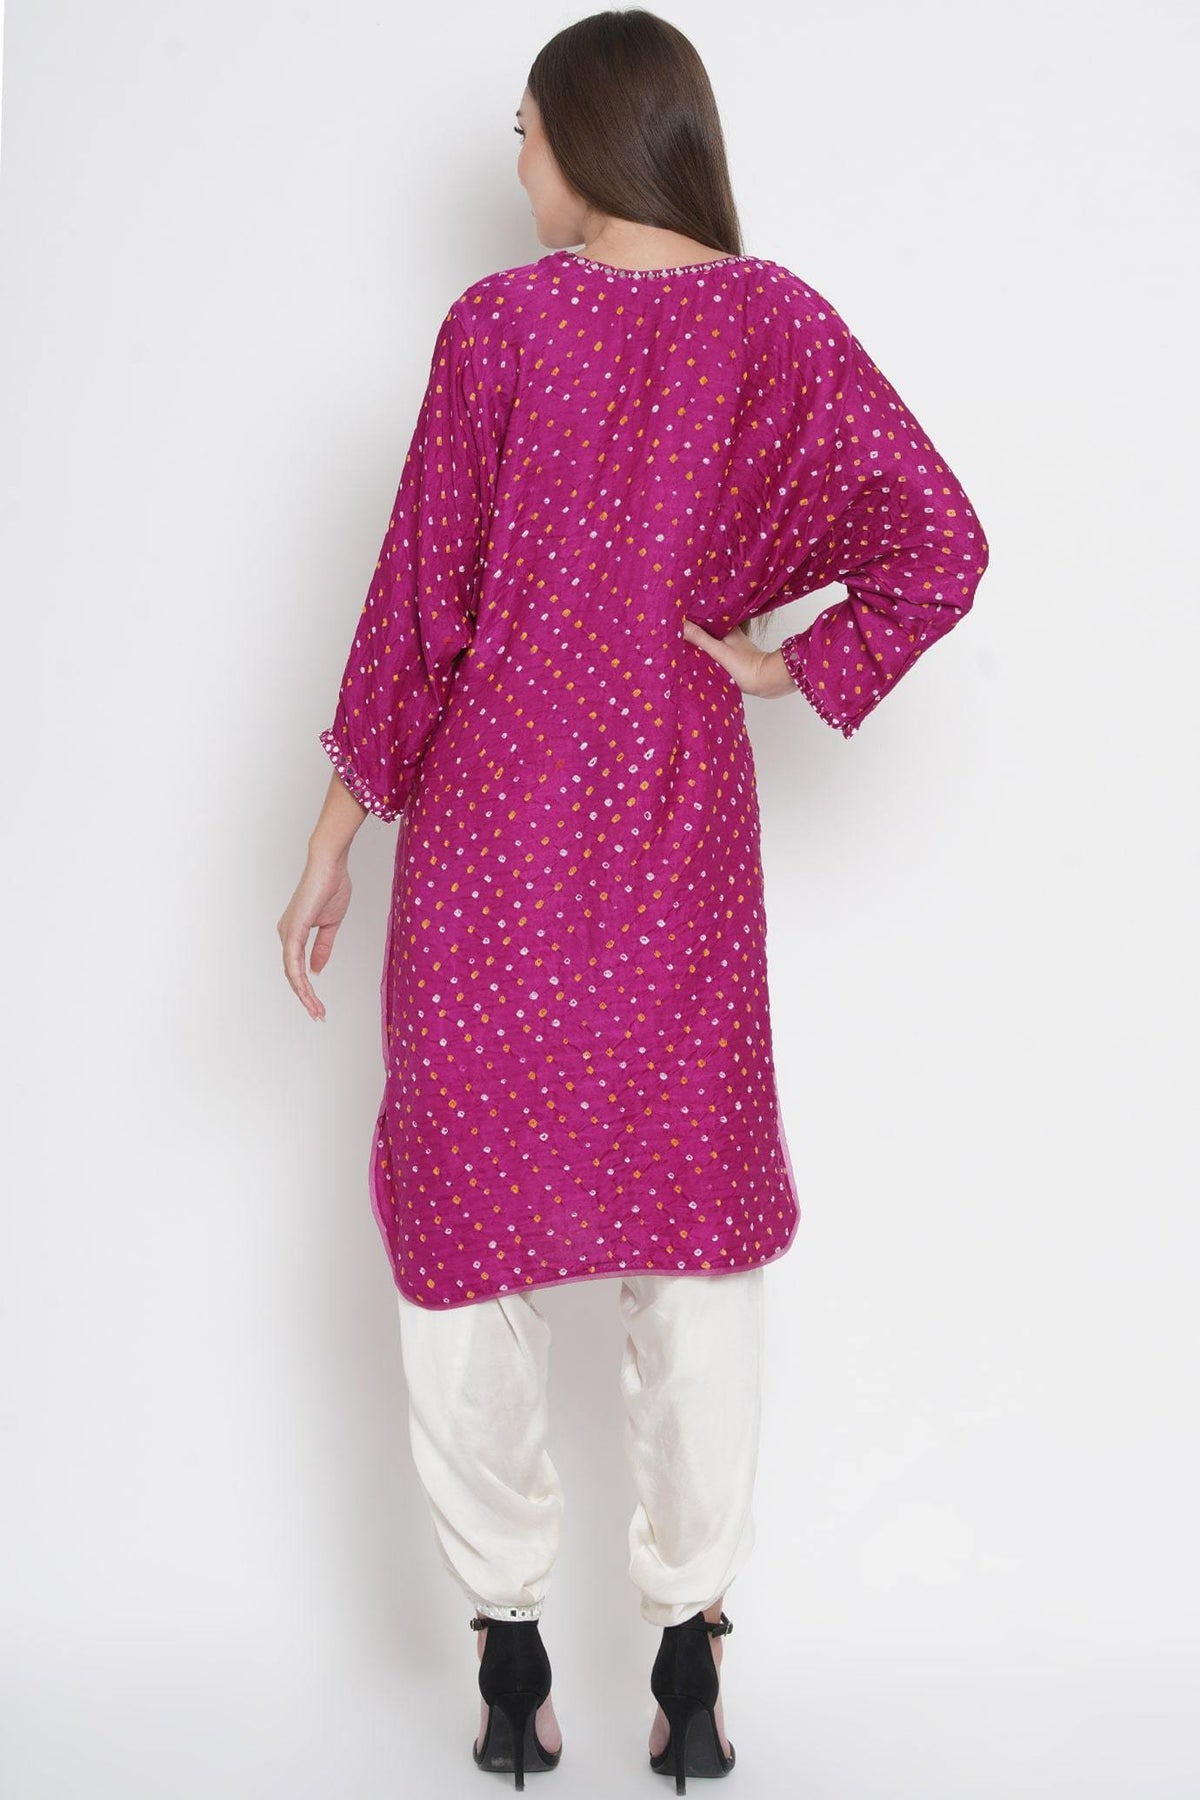 Twenty Nine Shirts & Tops Kimono sleeves tunic with mirrorwork